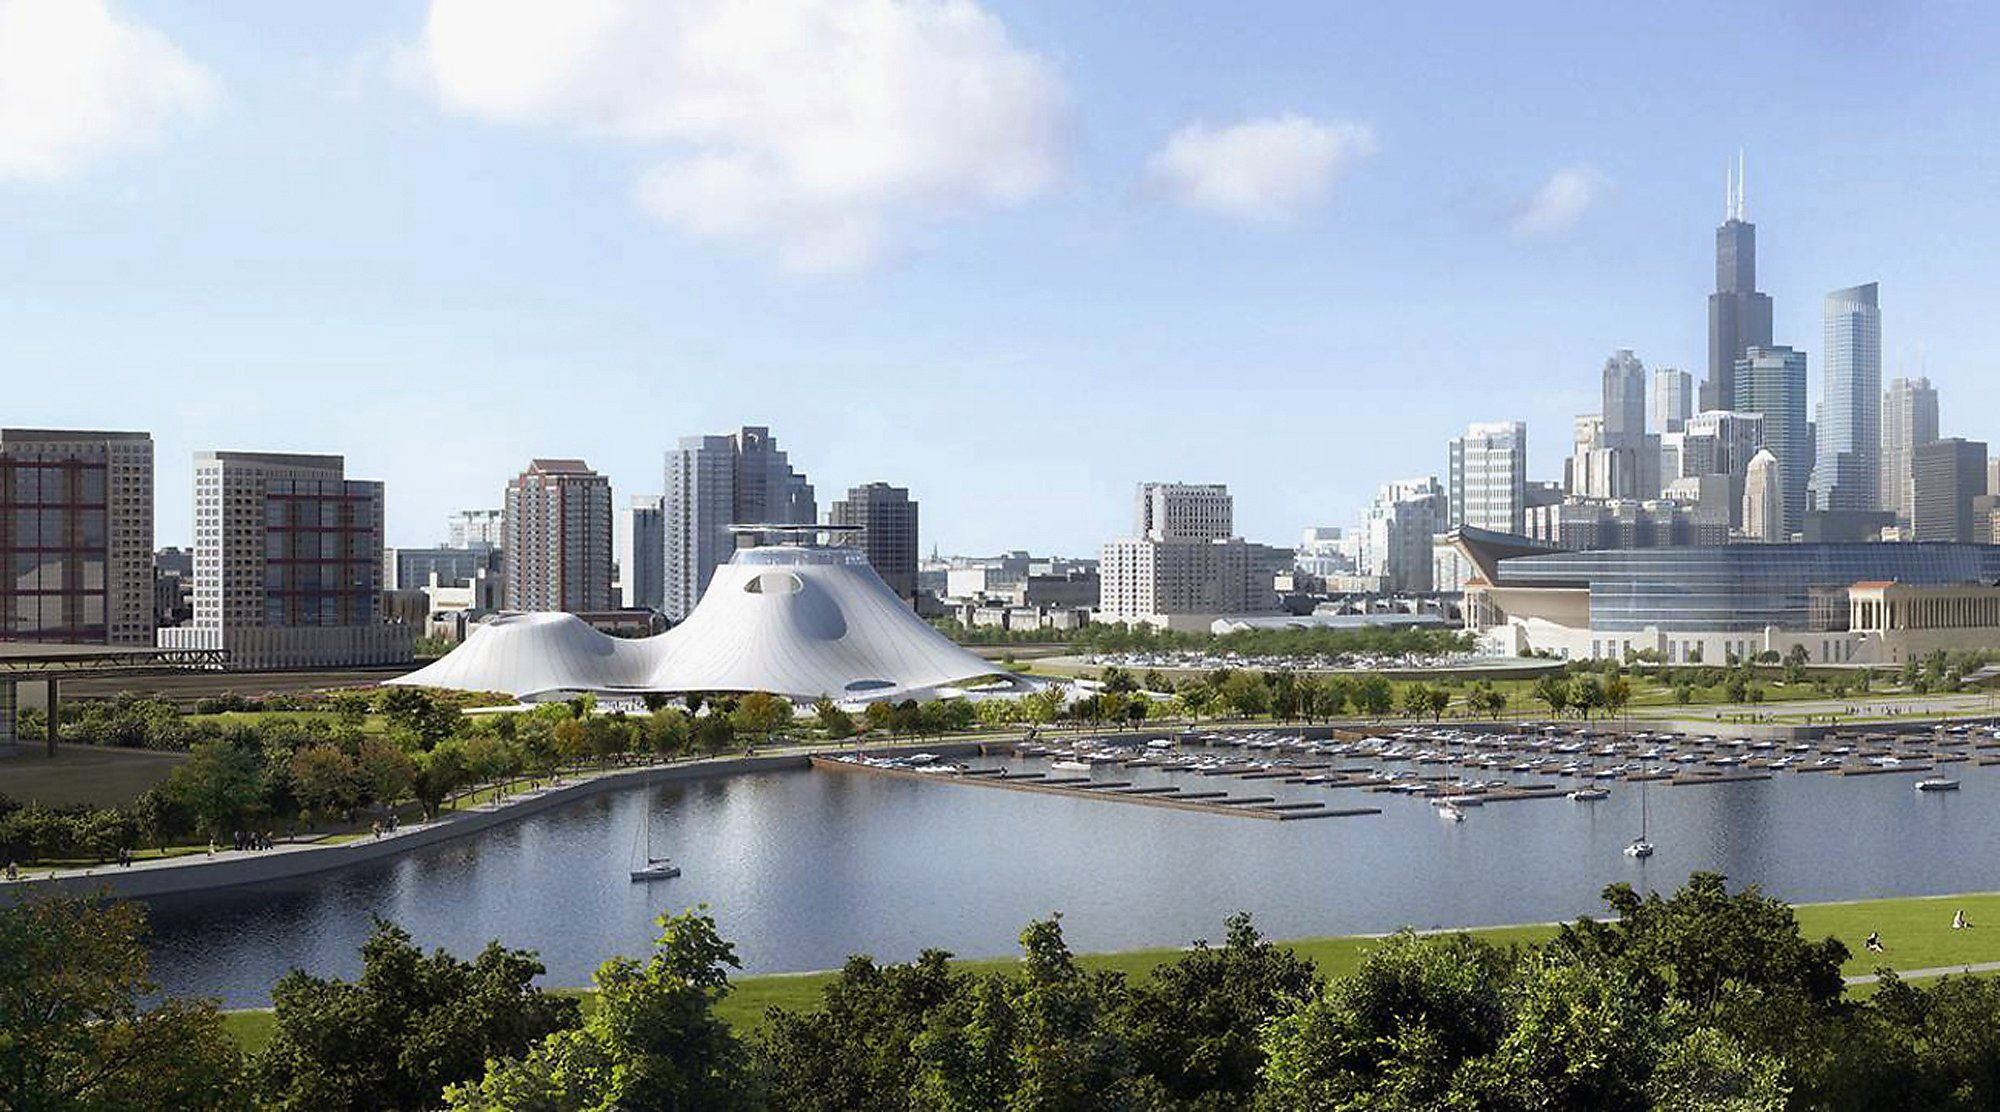 Lucas gives up on Chicago for his museum, seeks California site - San Francisco Chronicle